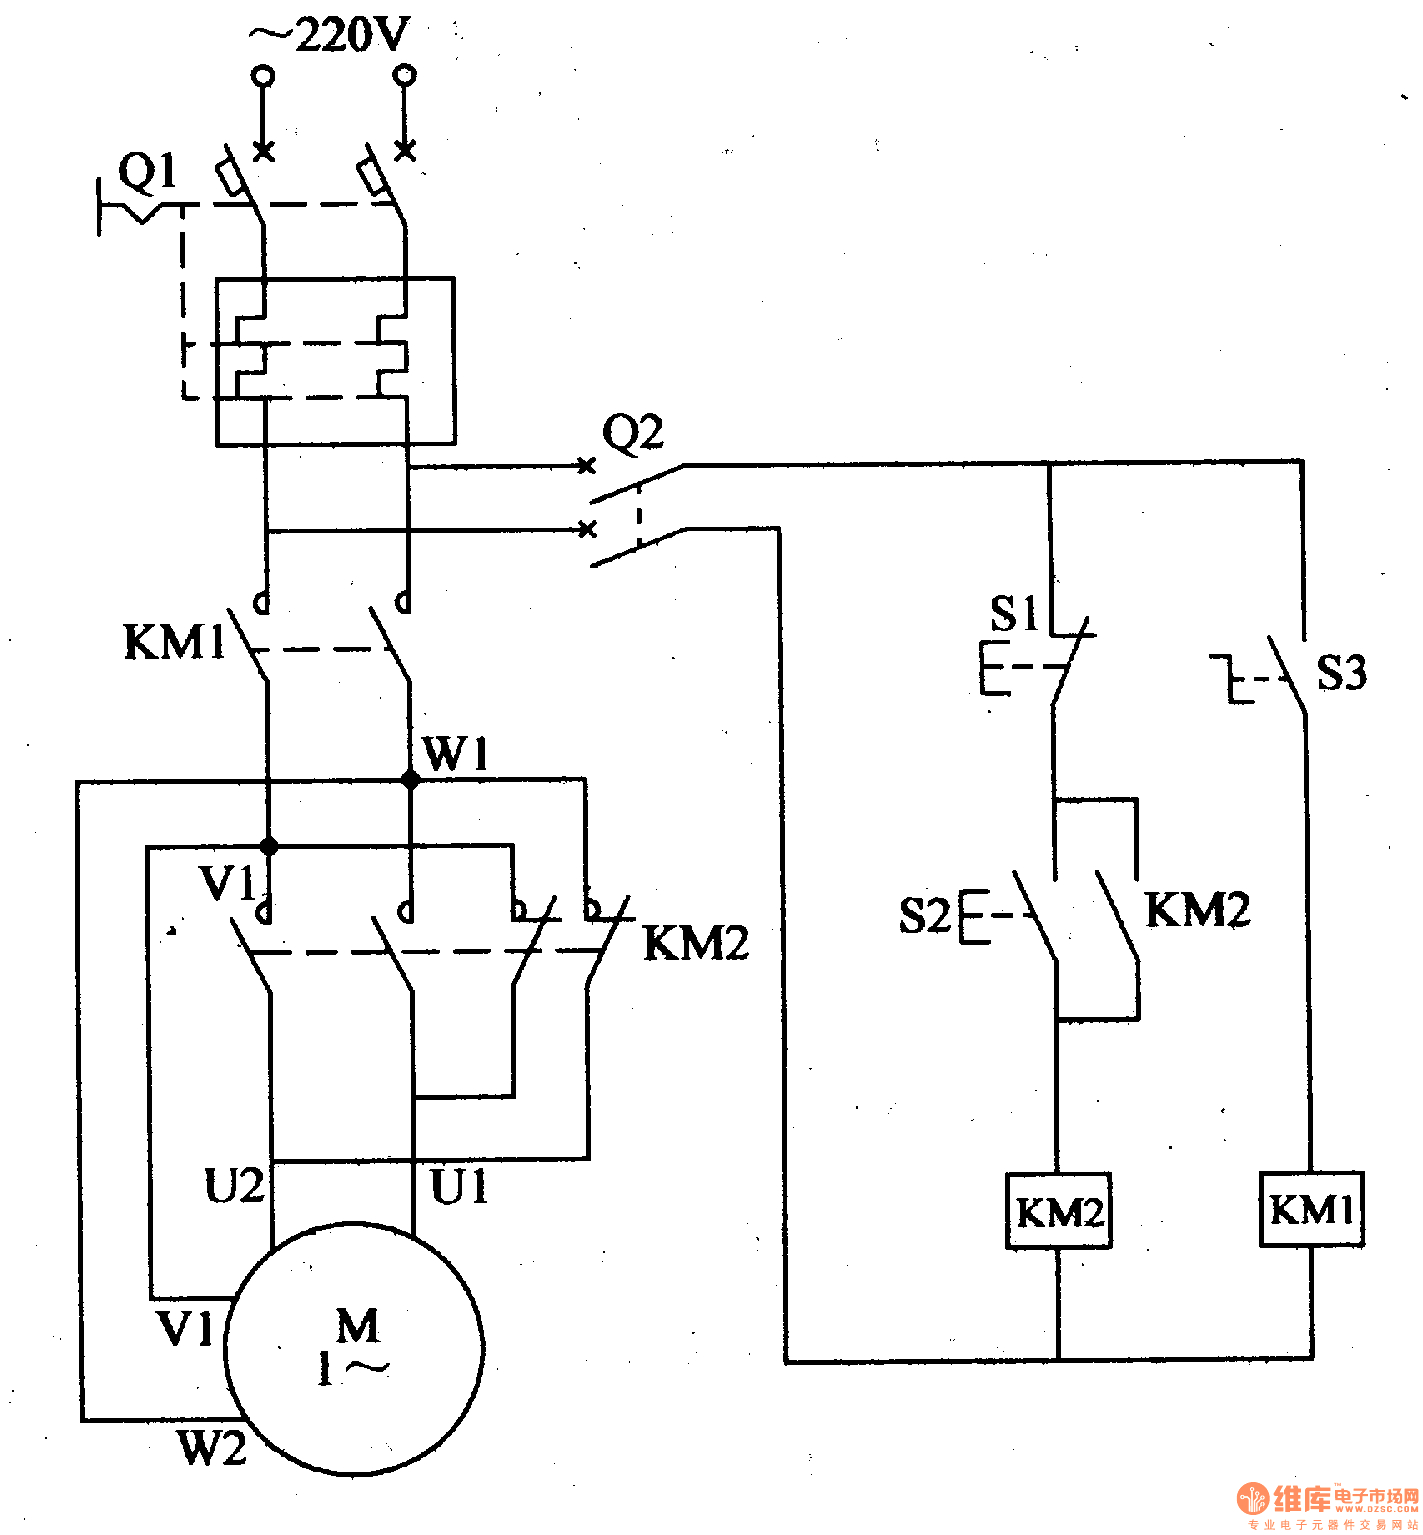 Collection Of Air Compressor Motor Starter Wiring Diagram Download